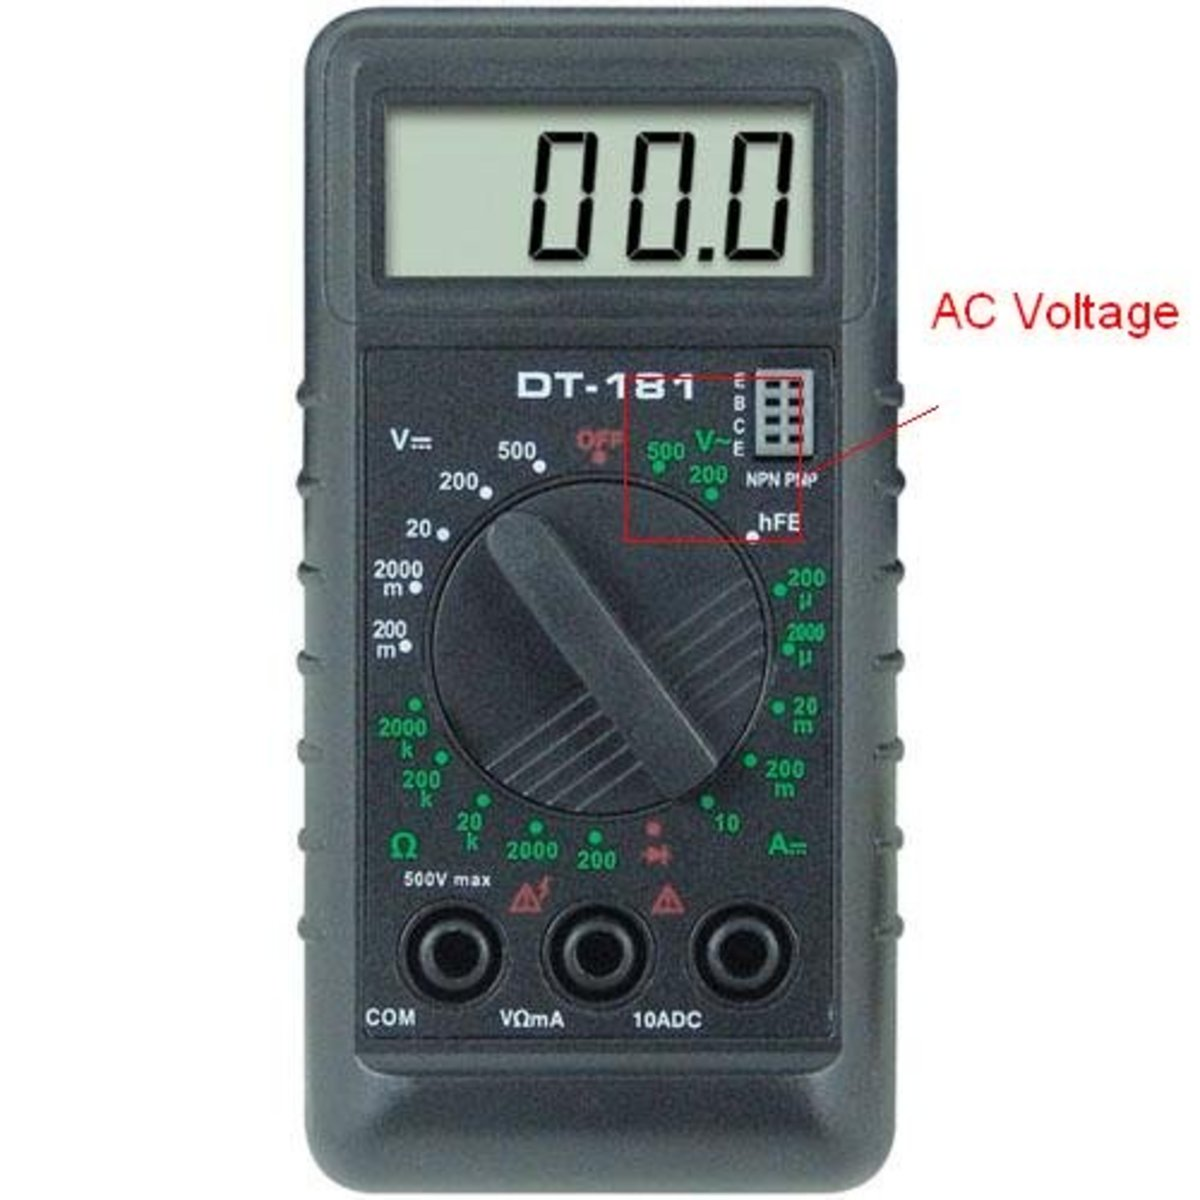 The two possible values to be selected during AC voltage measurement.